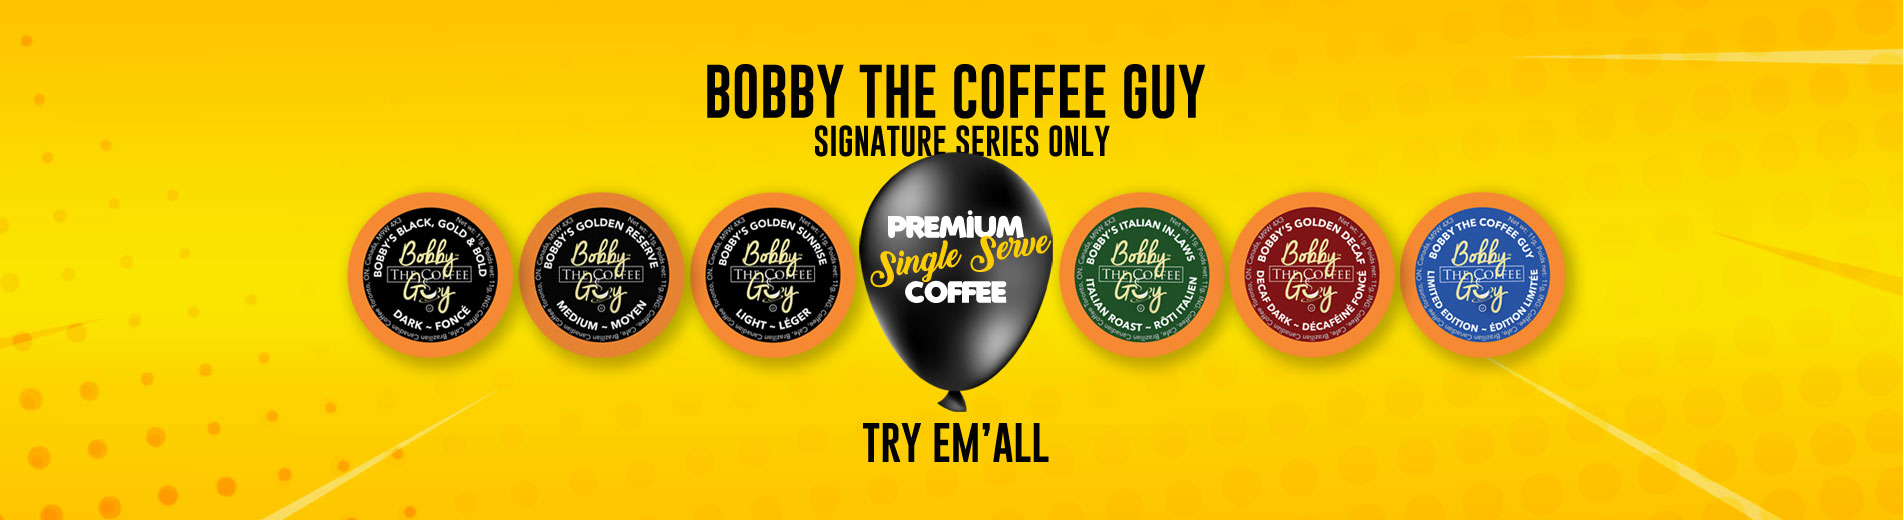 Why Drink Bobby the Coffee Guy